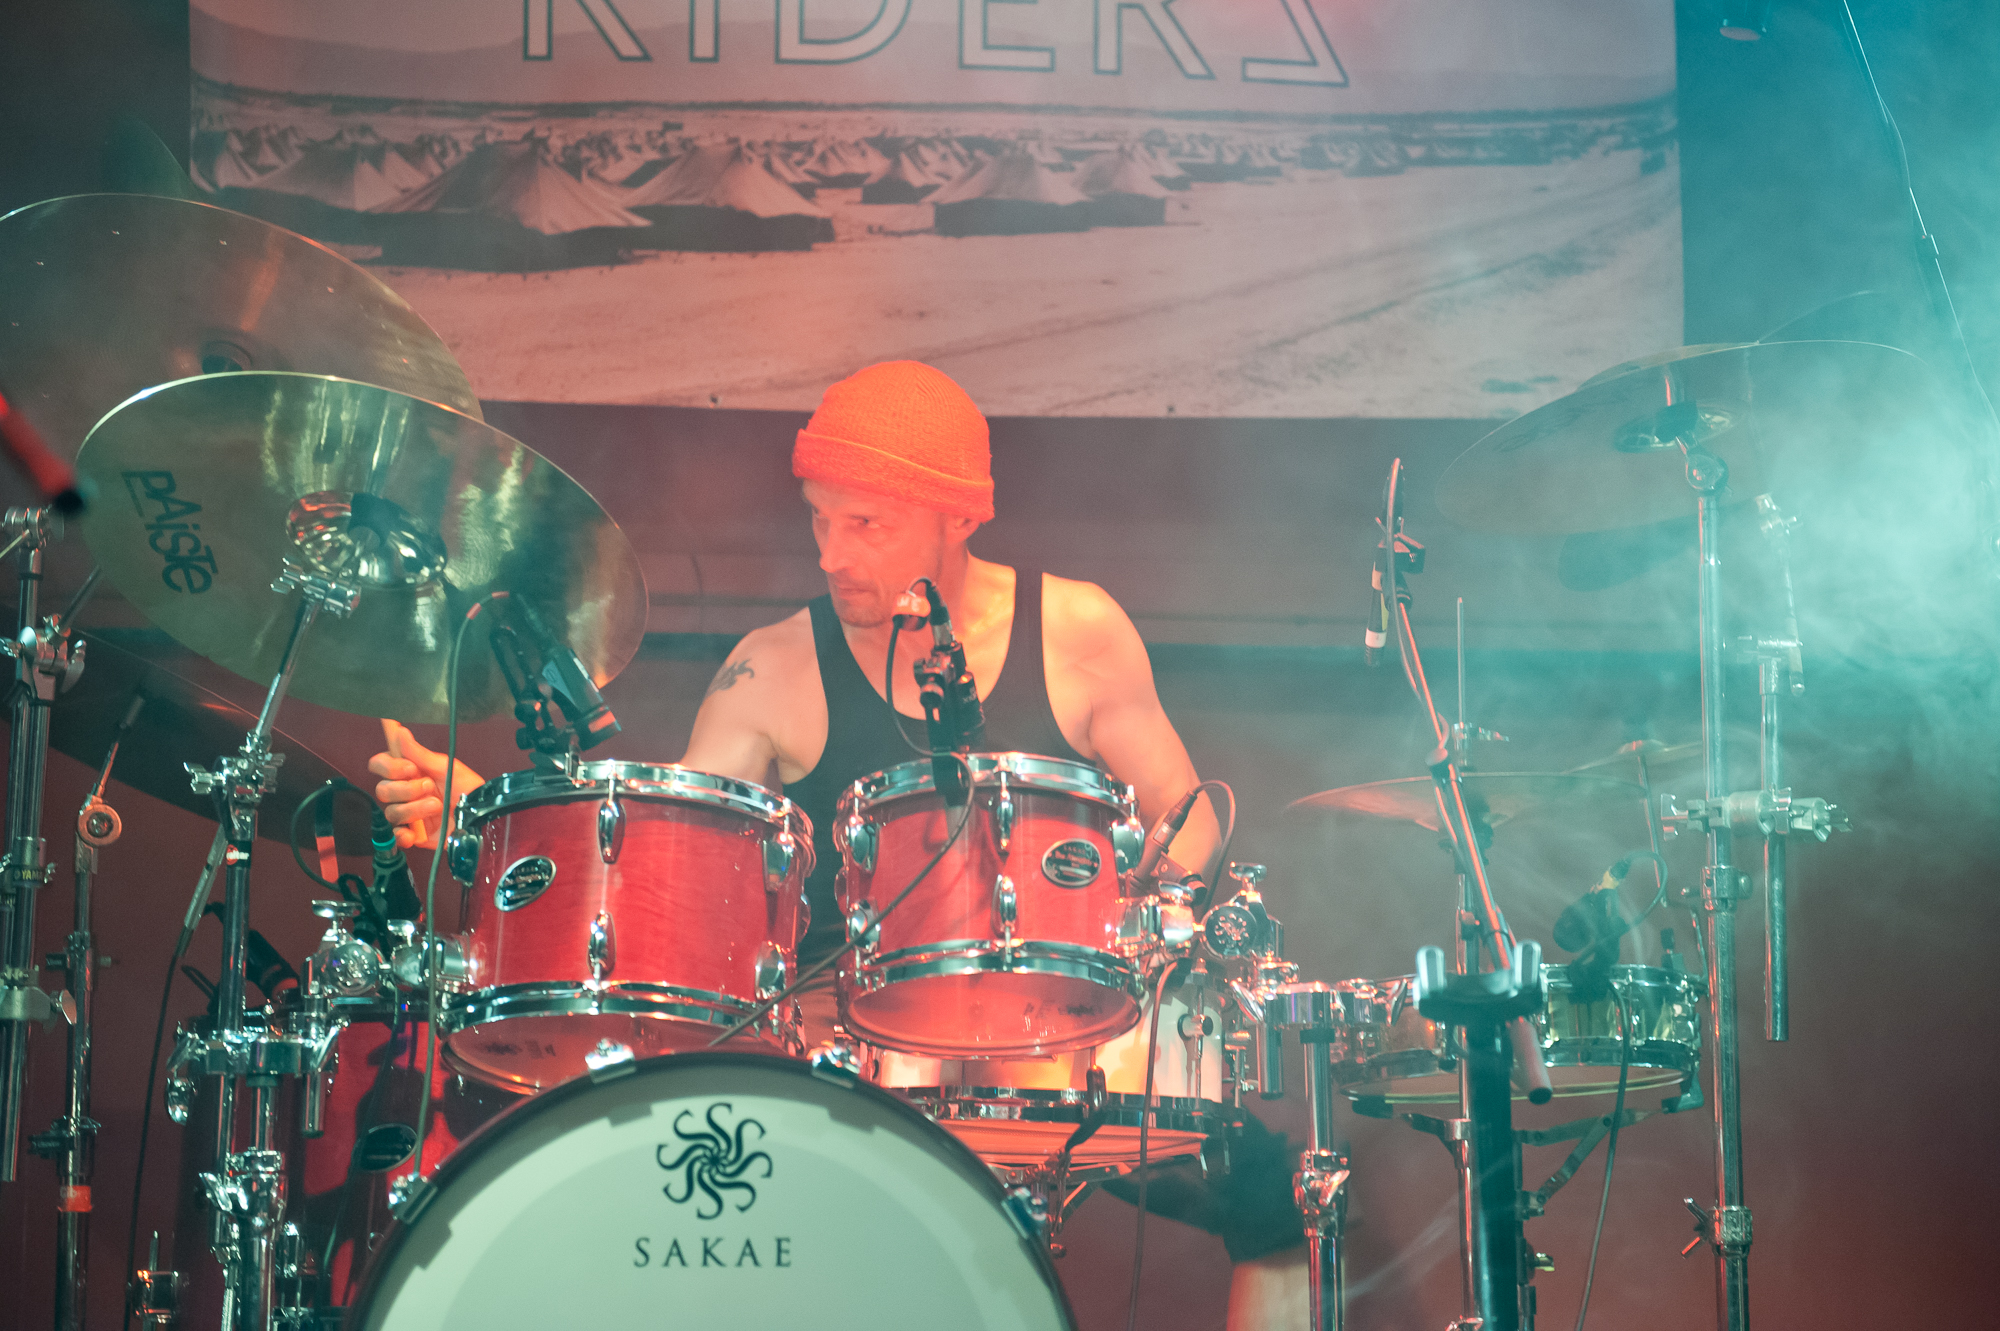 03_2016_05_20_Turock_Black Space Riders-9325